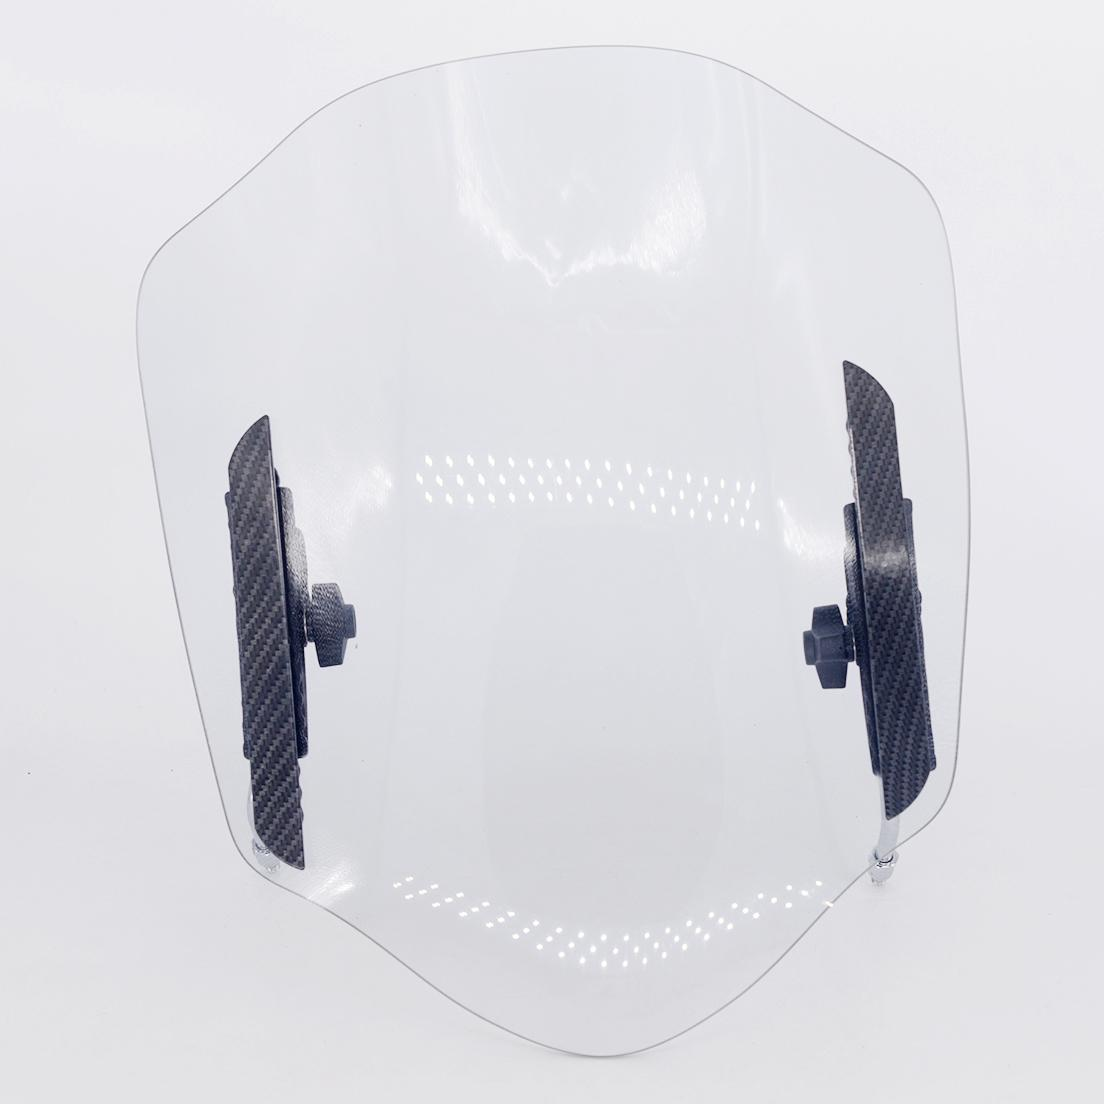 Motorcycle Universal Windshield Windscreen Visor By Lucky Market Place.